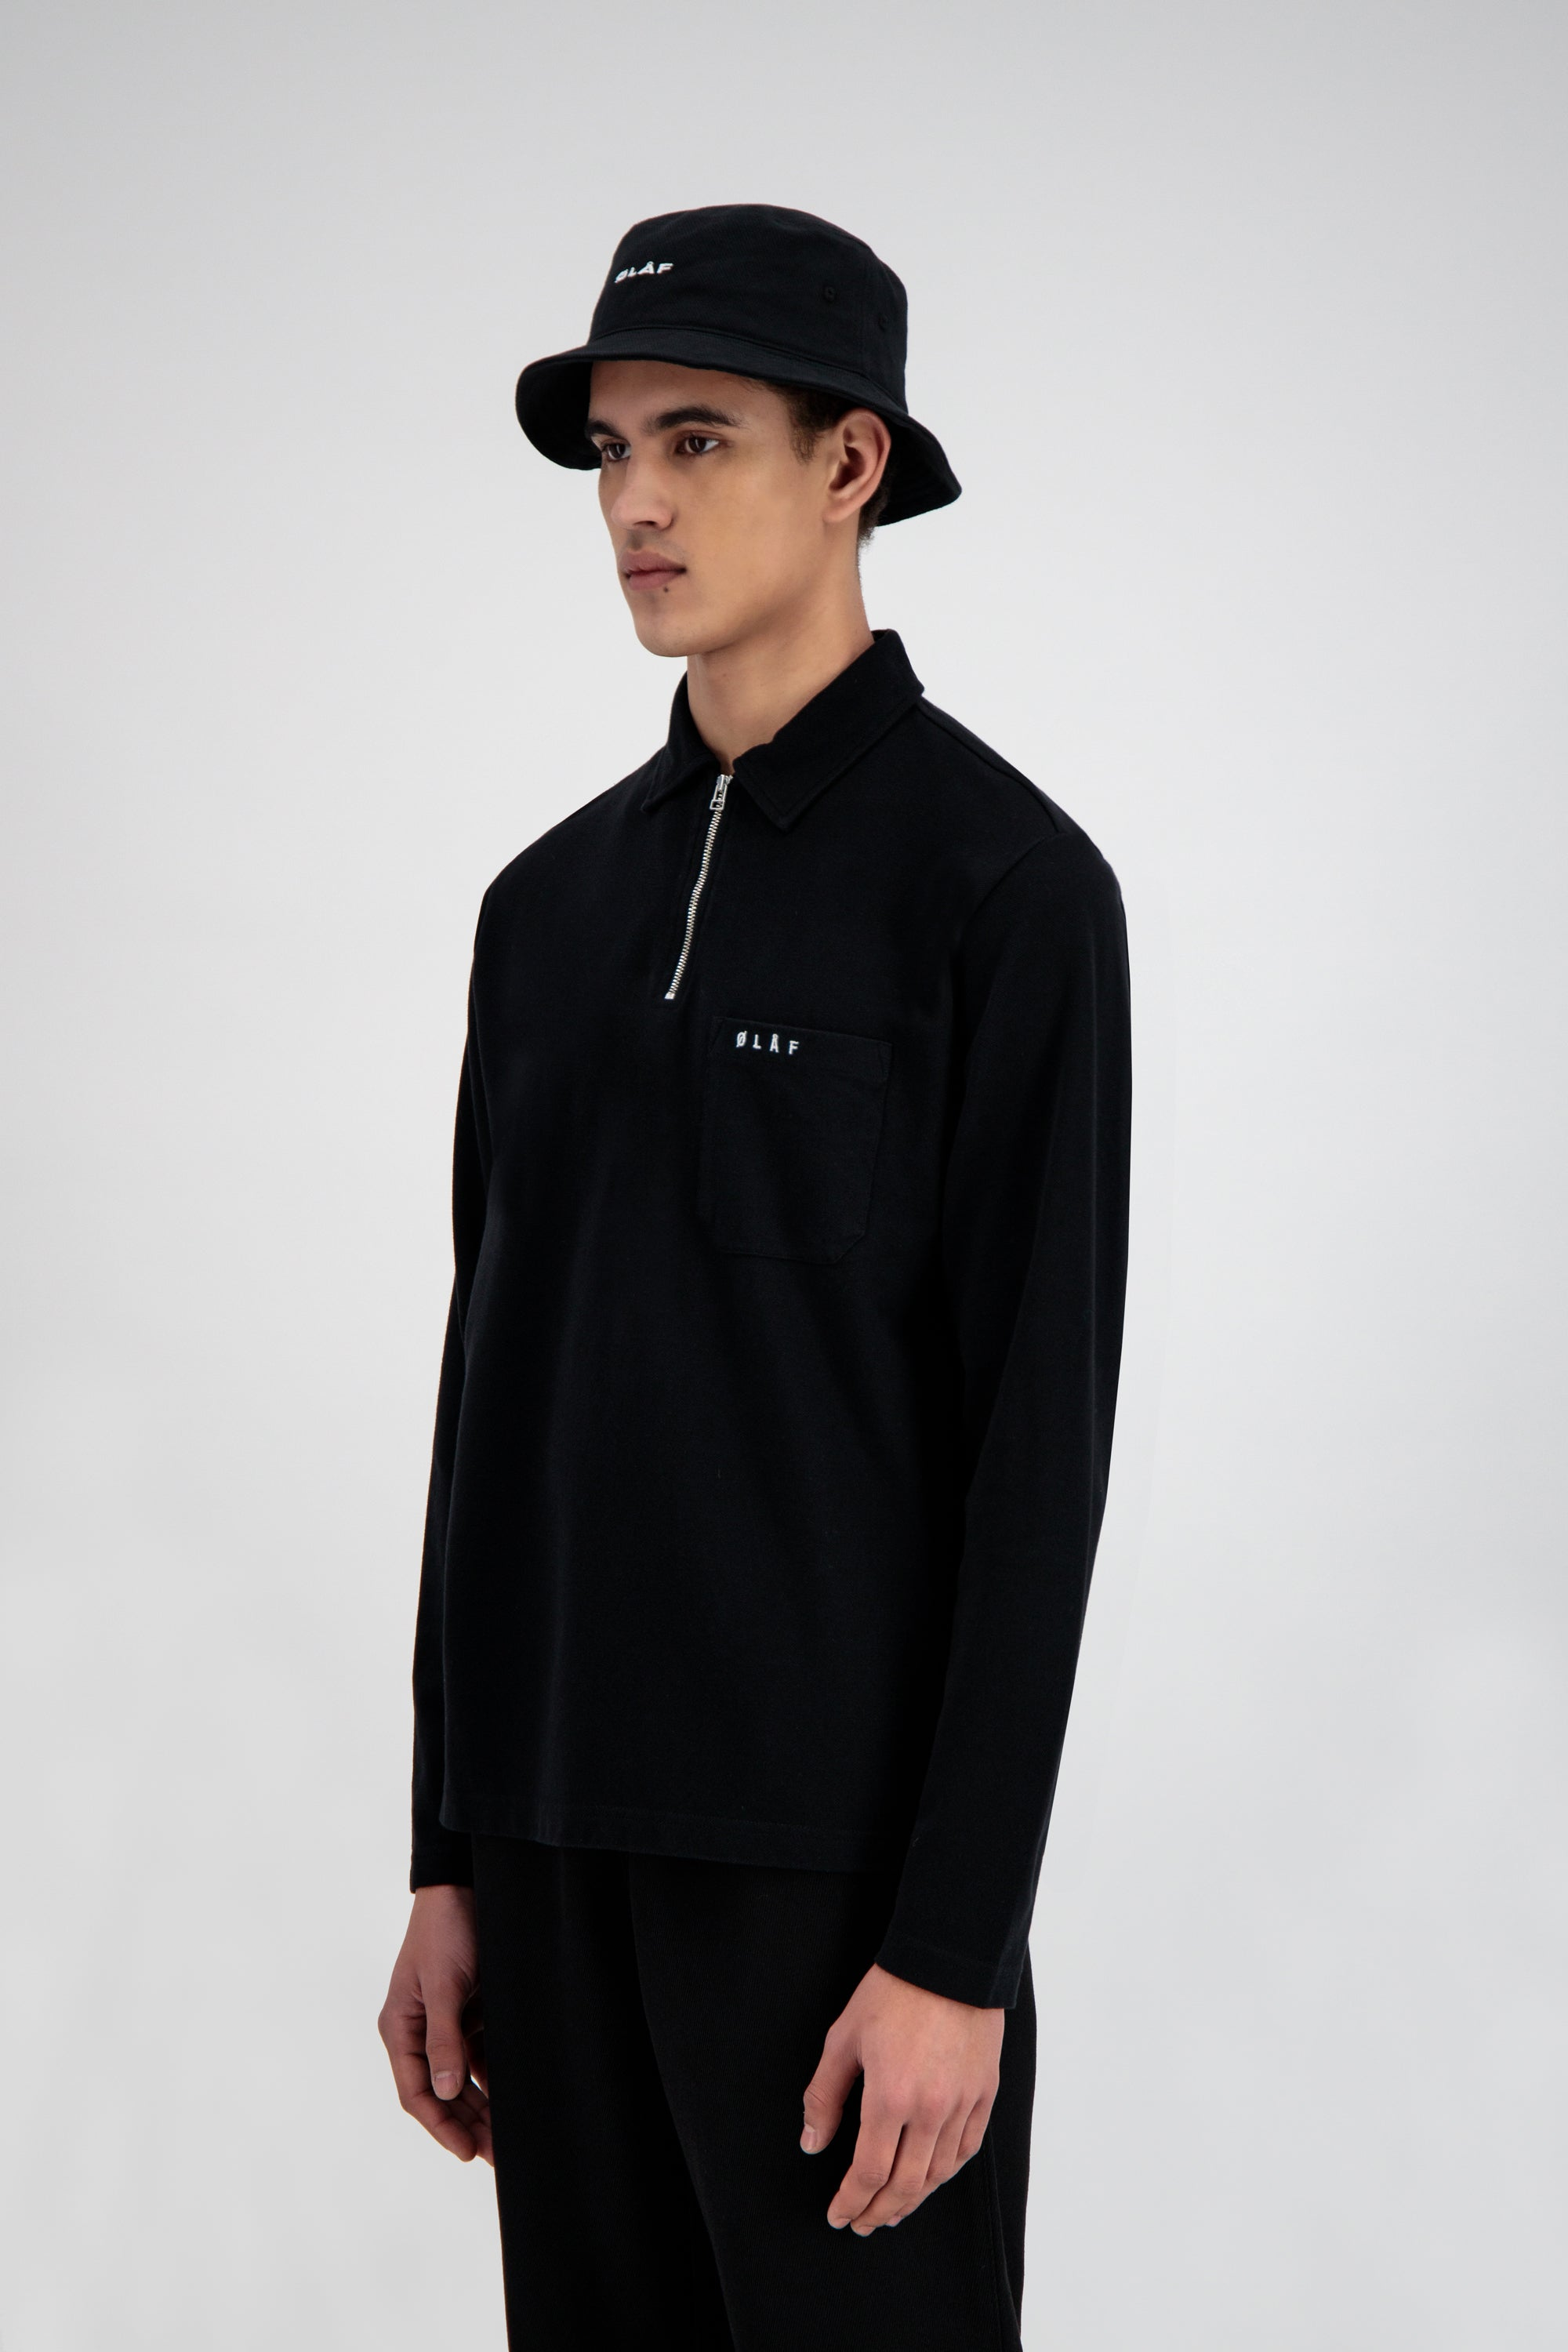 ØLÅF Zip Polo LS Tee <br>Black